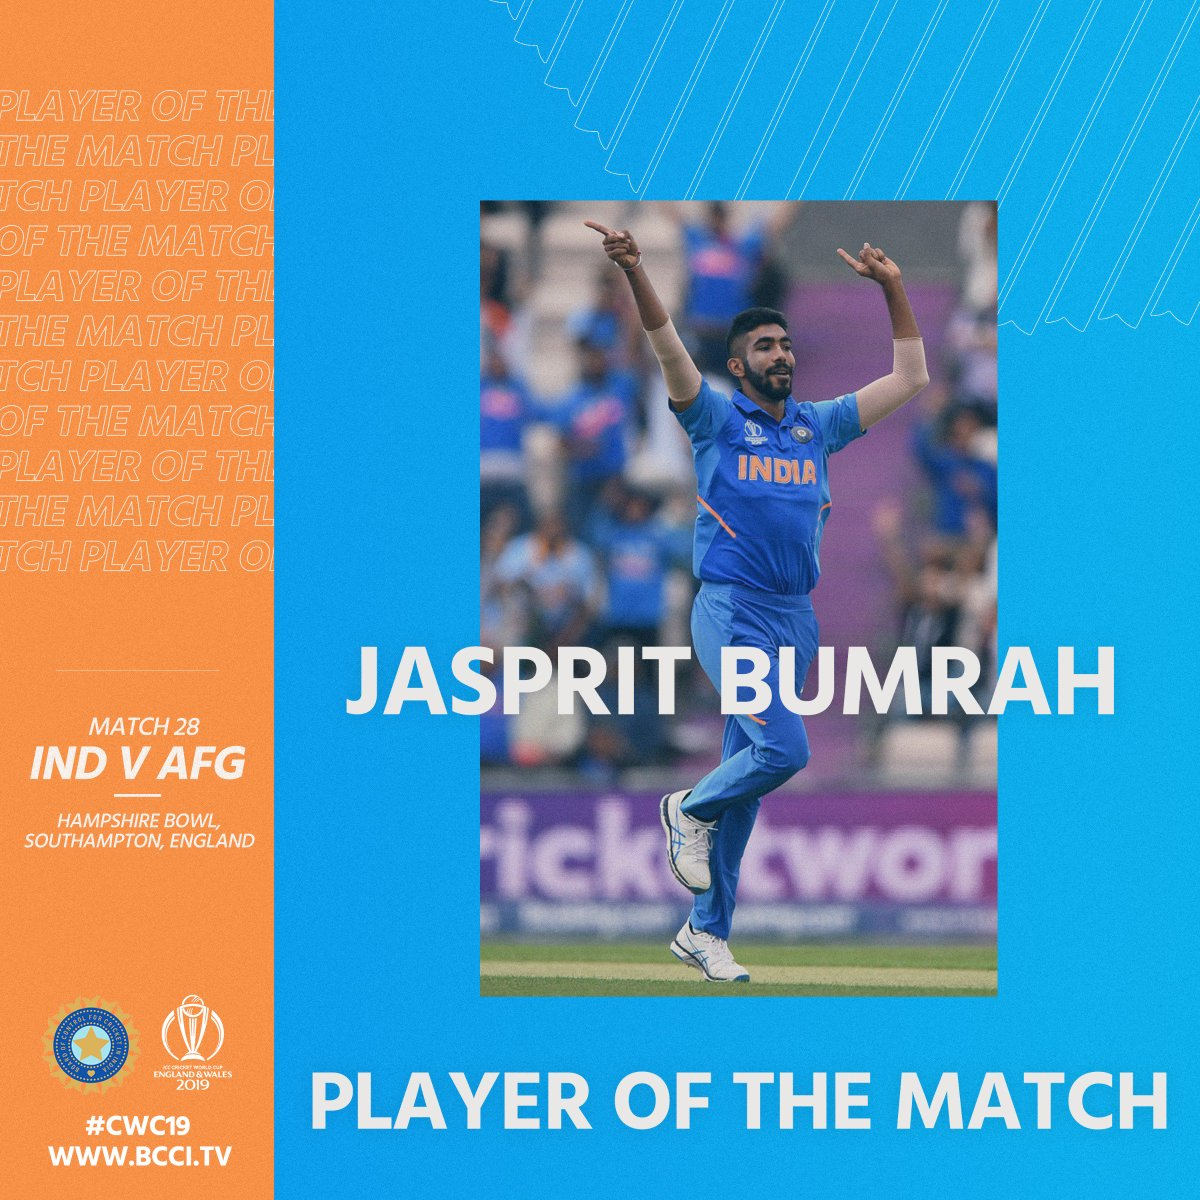 Congratulations Yorker KING 👑👑@Jaspritbumrah93 for a match-changing & match-winning performance #TeamIndia #INDvAFG #CWC19